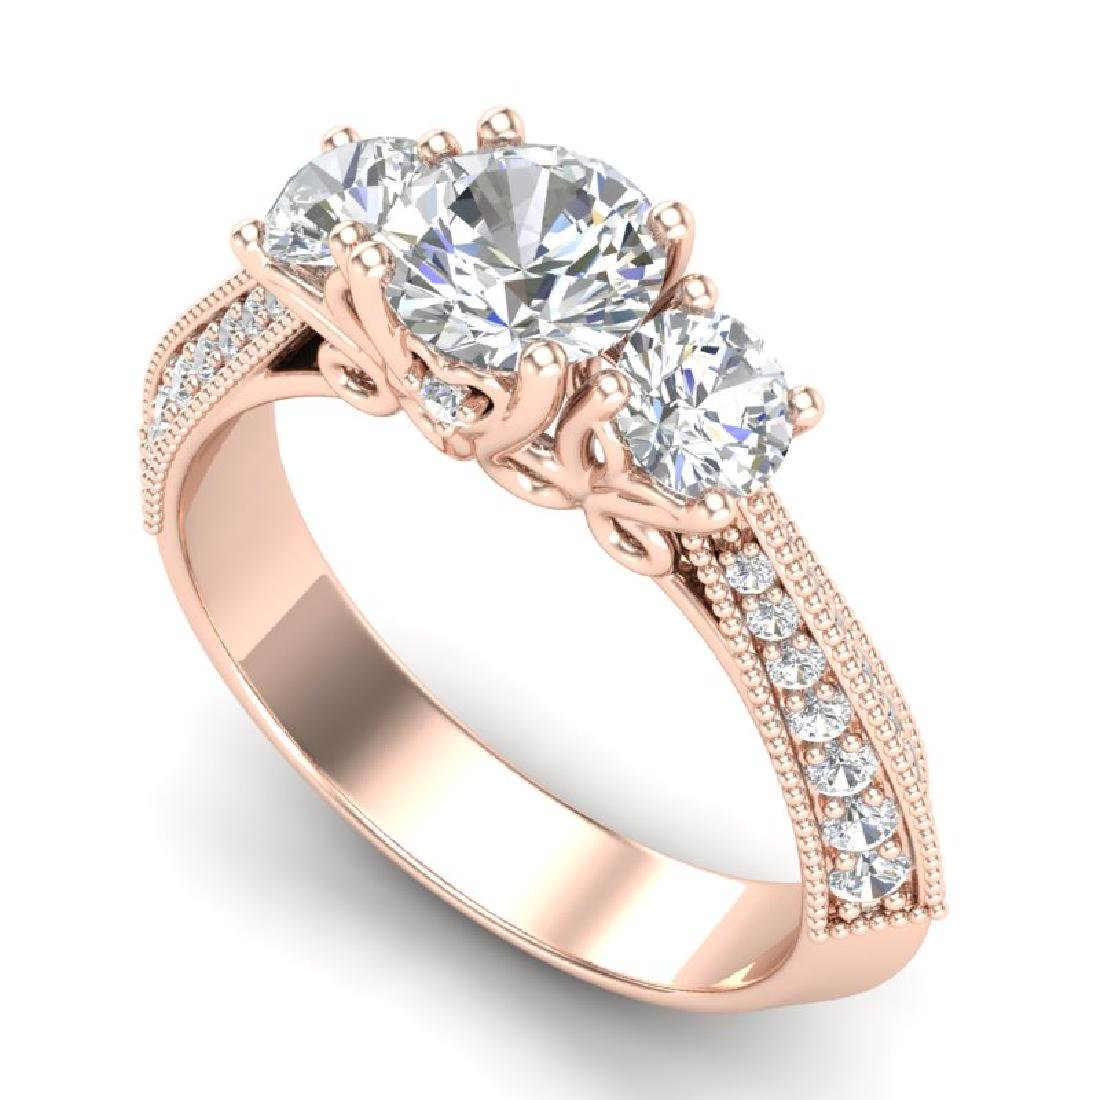 1.81 CTW VS/SI Diamond Art Deco 3 Stone Ring 18K Rose